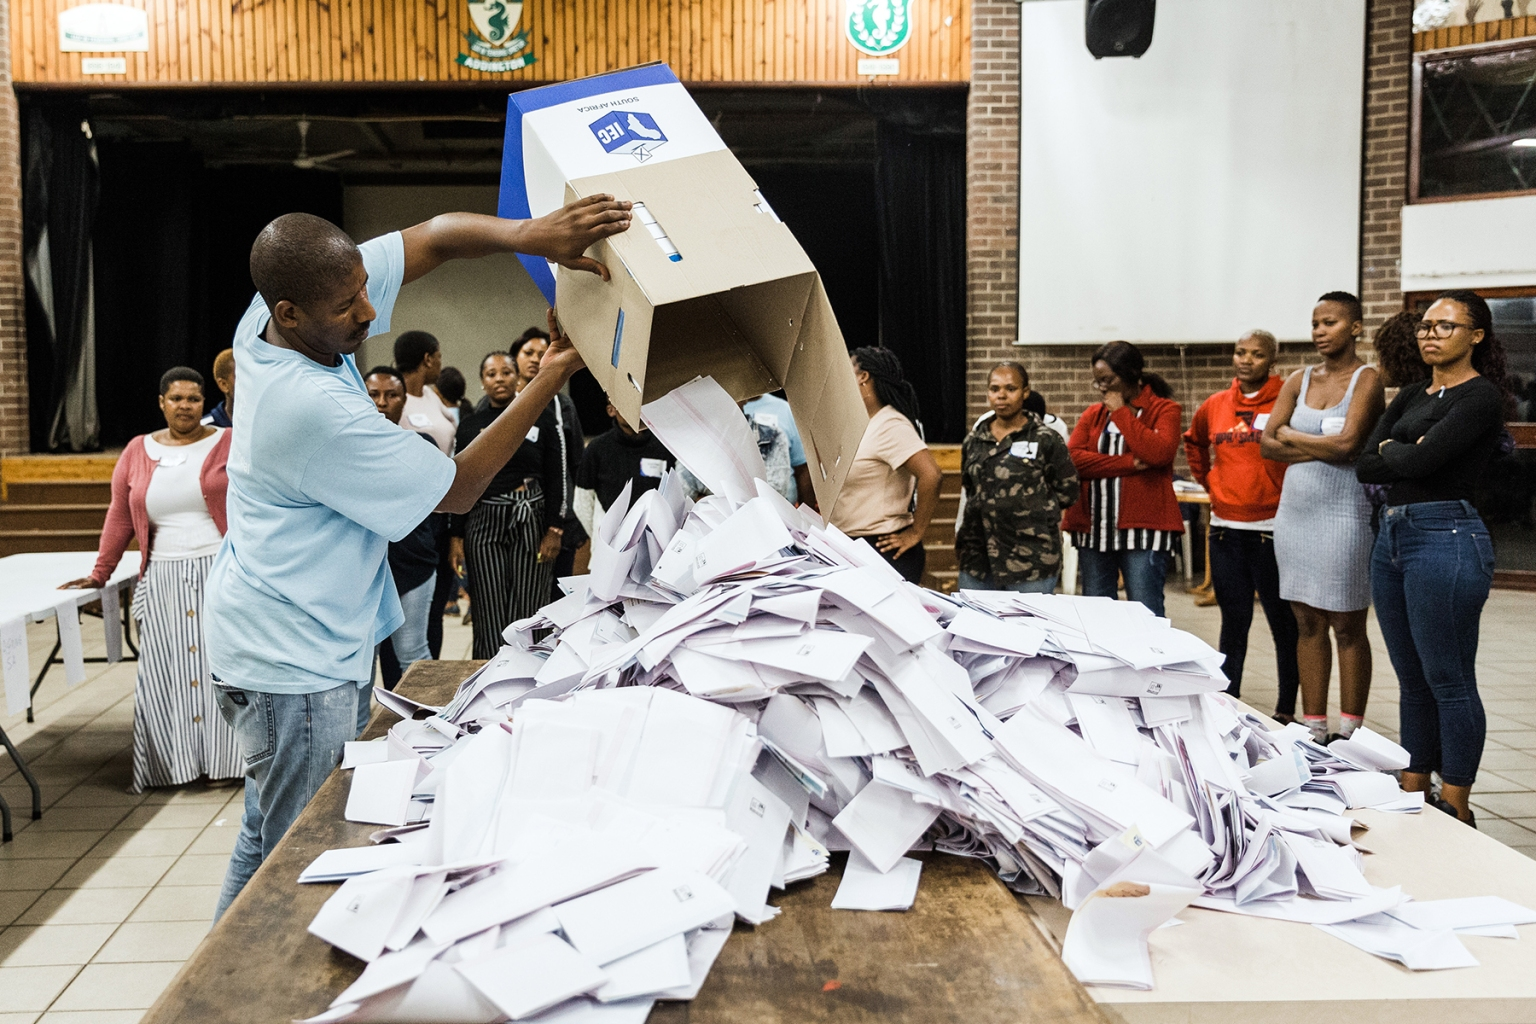 An Independent Electoral Officer opens a ballot box as counting begins at the Addington Primary School after voting in the sixth national general elections in Durban, South Africa, on May 8. RAJESH JANTILAL/AFP/Getty Images